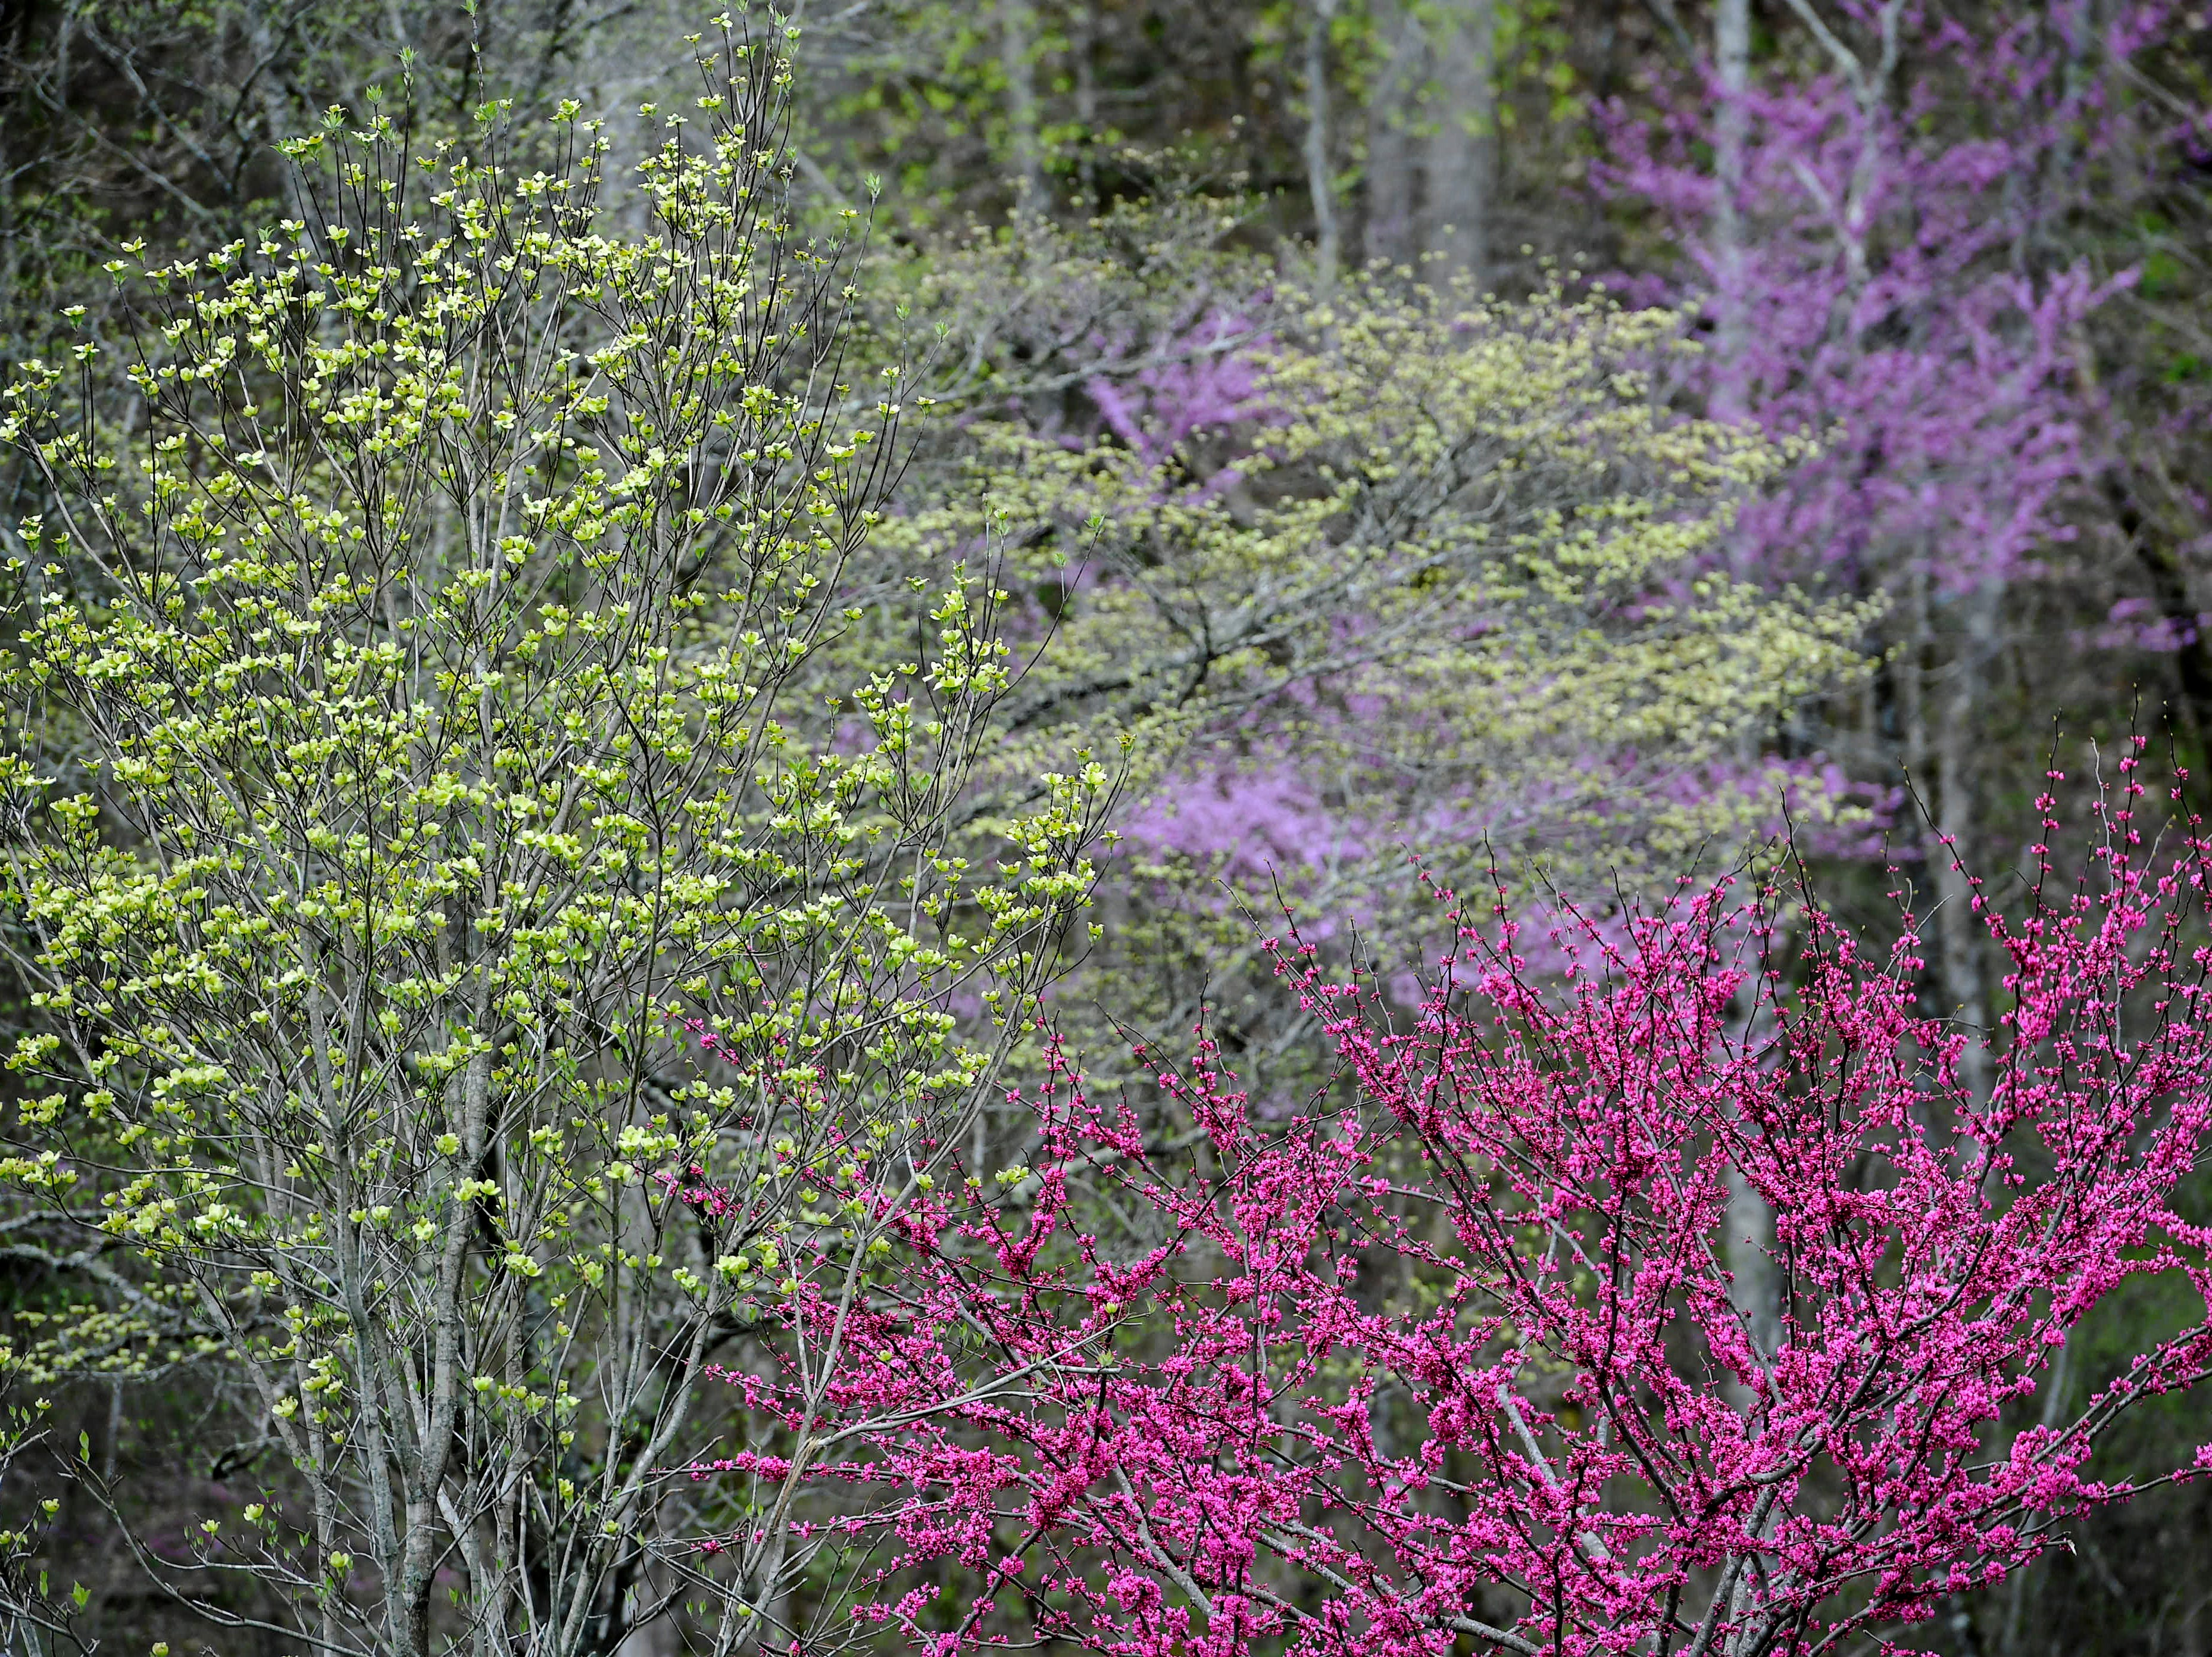 Trees bloom at the Oconaluftee Visitor Center at Great Smoky Mountain National Park April 11, 2019.